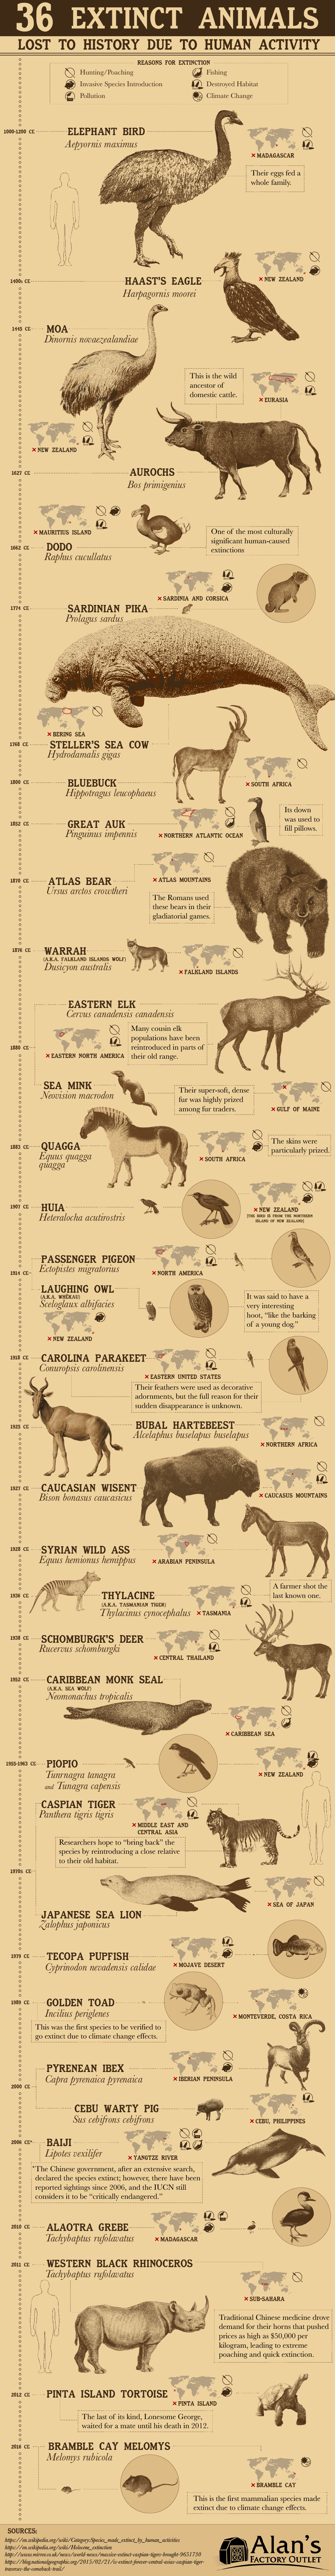 36 Extinct Animals Lost Due to Human Activity - AlansFactoryOutlet.com - Infographic